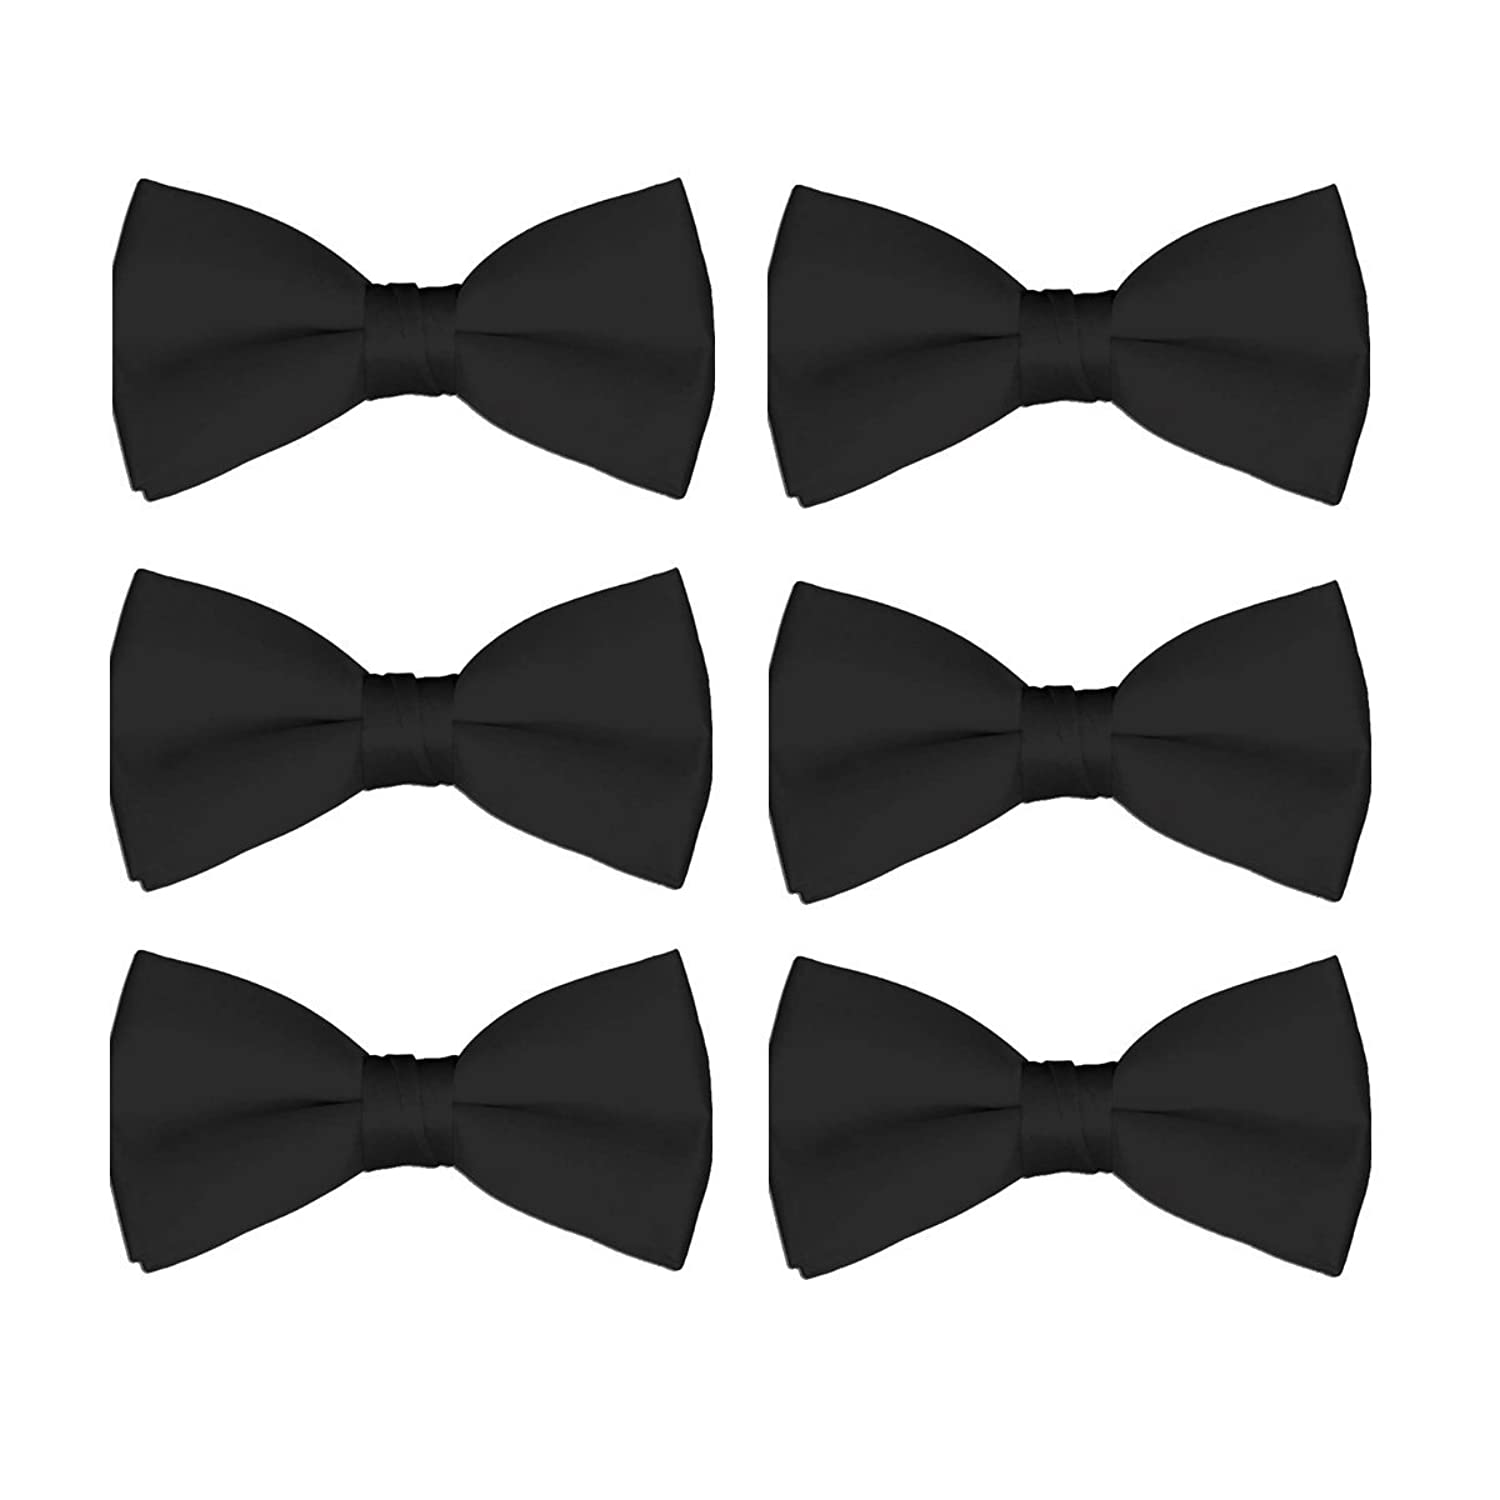 App shopper sport archery resort games - Men S Bow Tie Wholesale 6 Pack Wedding Ties Pre Tied Formal Tuxedo Bowties Black At Amazon Men S Clothing Store